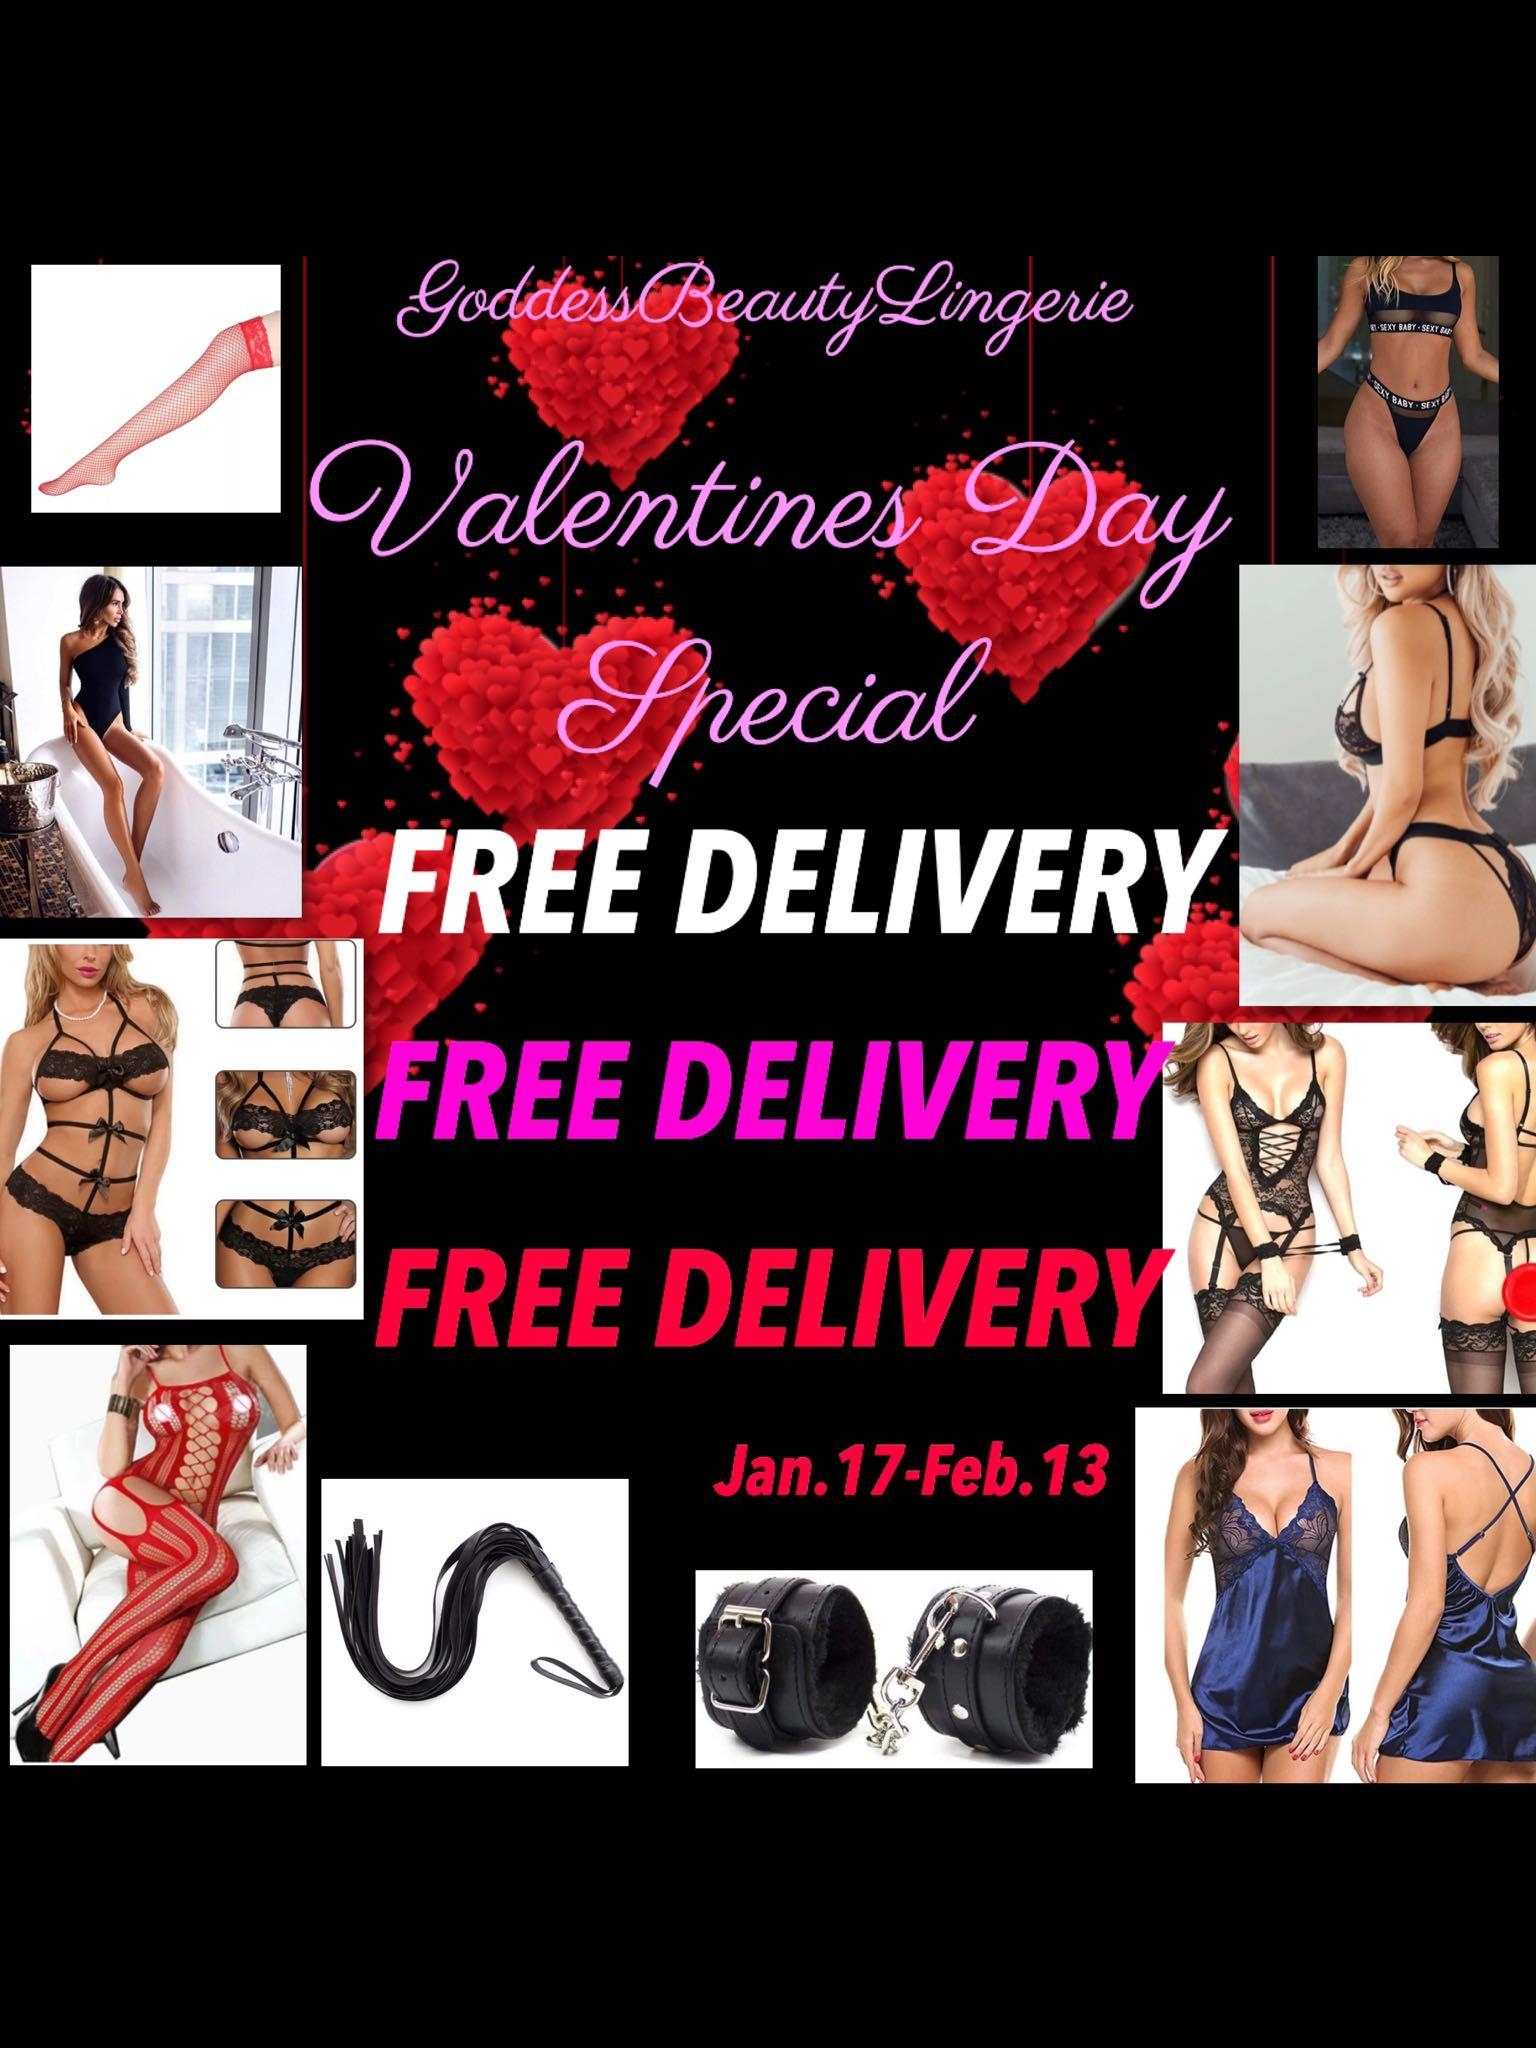 Lingeries Bodysuits whips handcuffs Valentine's Day Red Black Pink